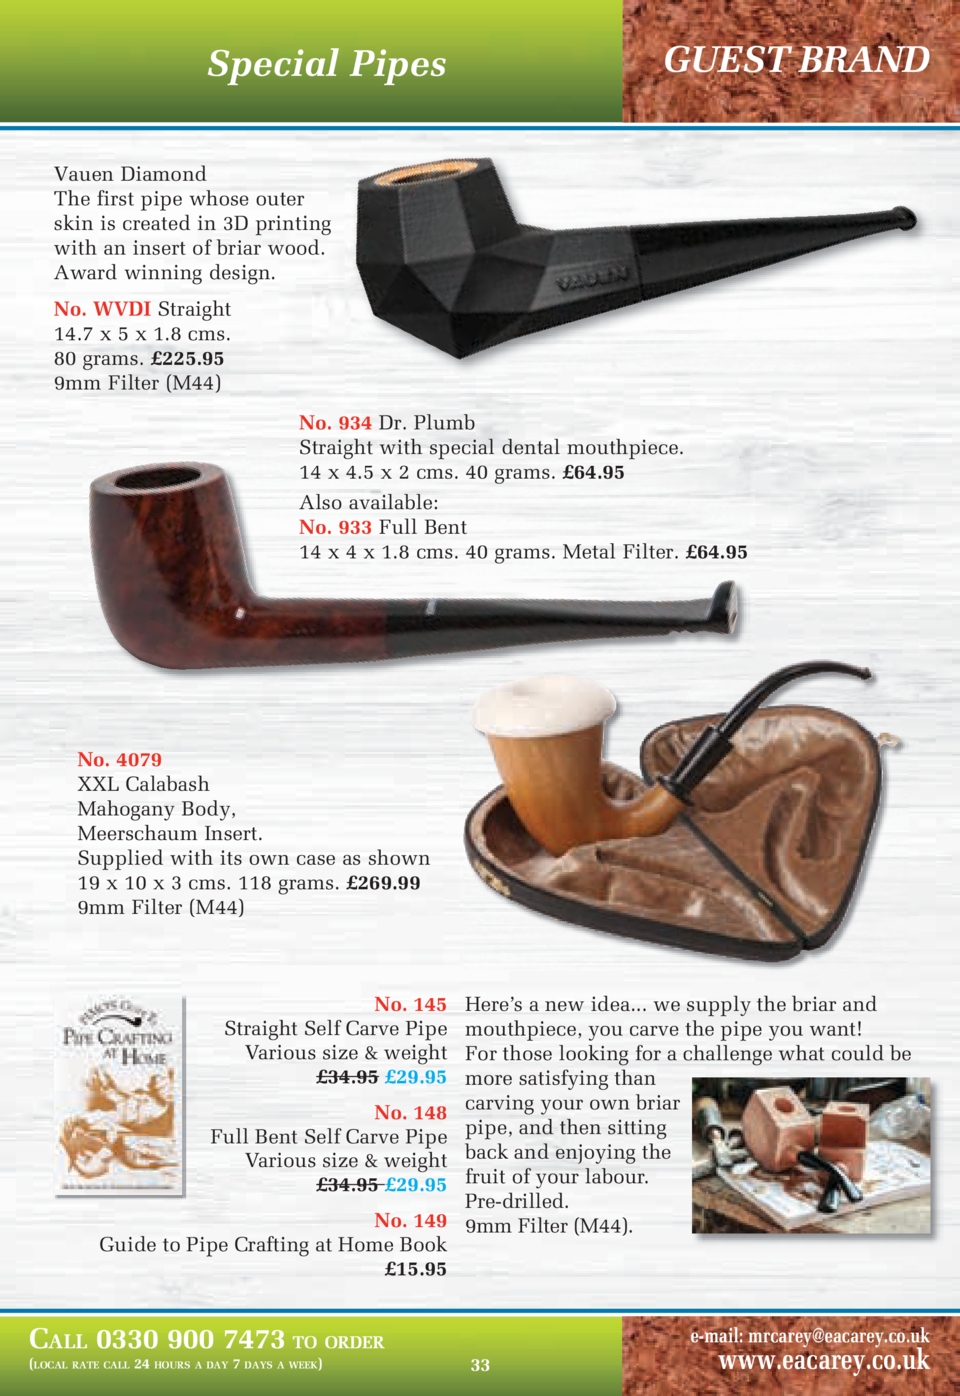 GUEST BRAND  Special Pipes Vauen Diamond The first pipe whose outer skin is created in 3D printing with an insert of briar...